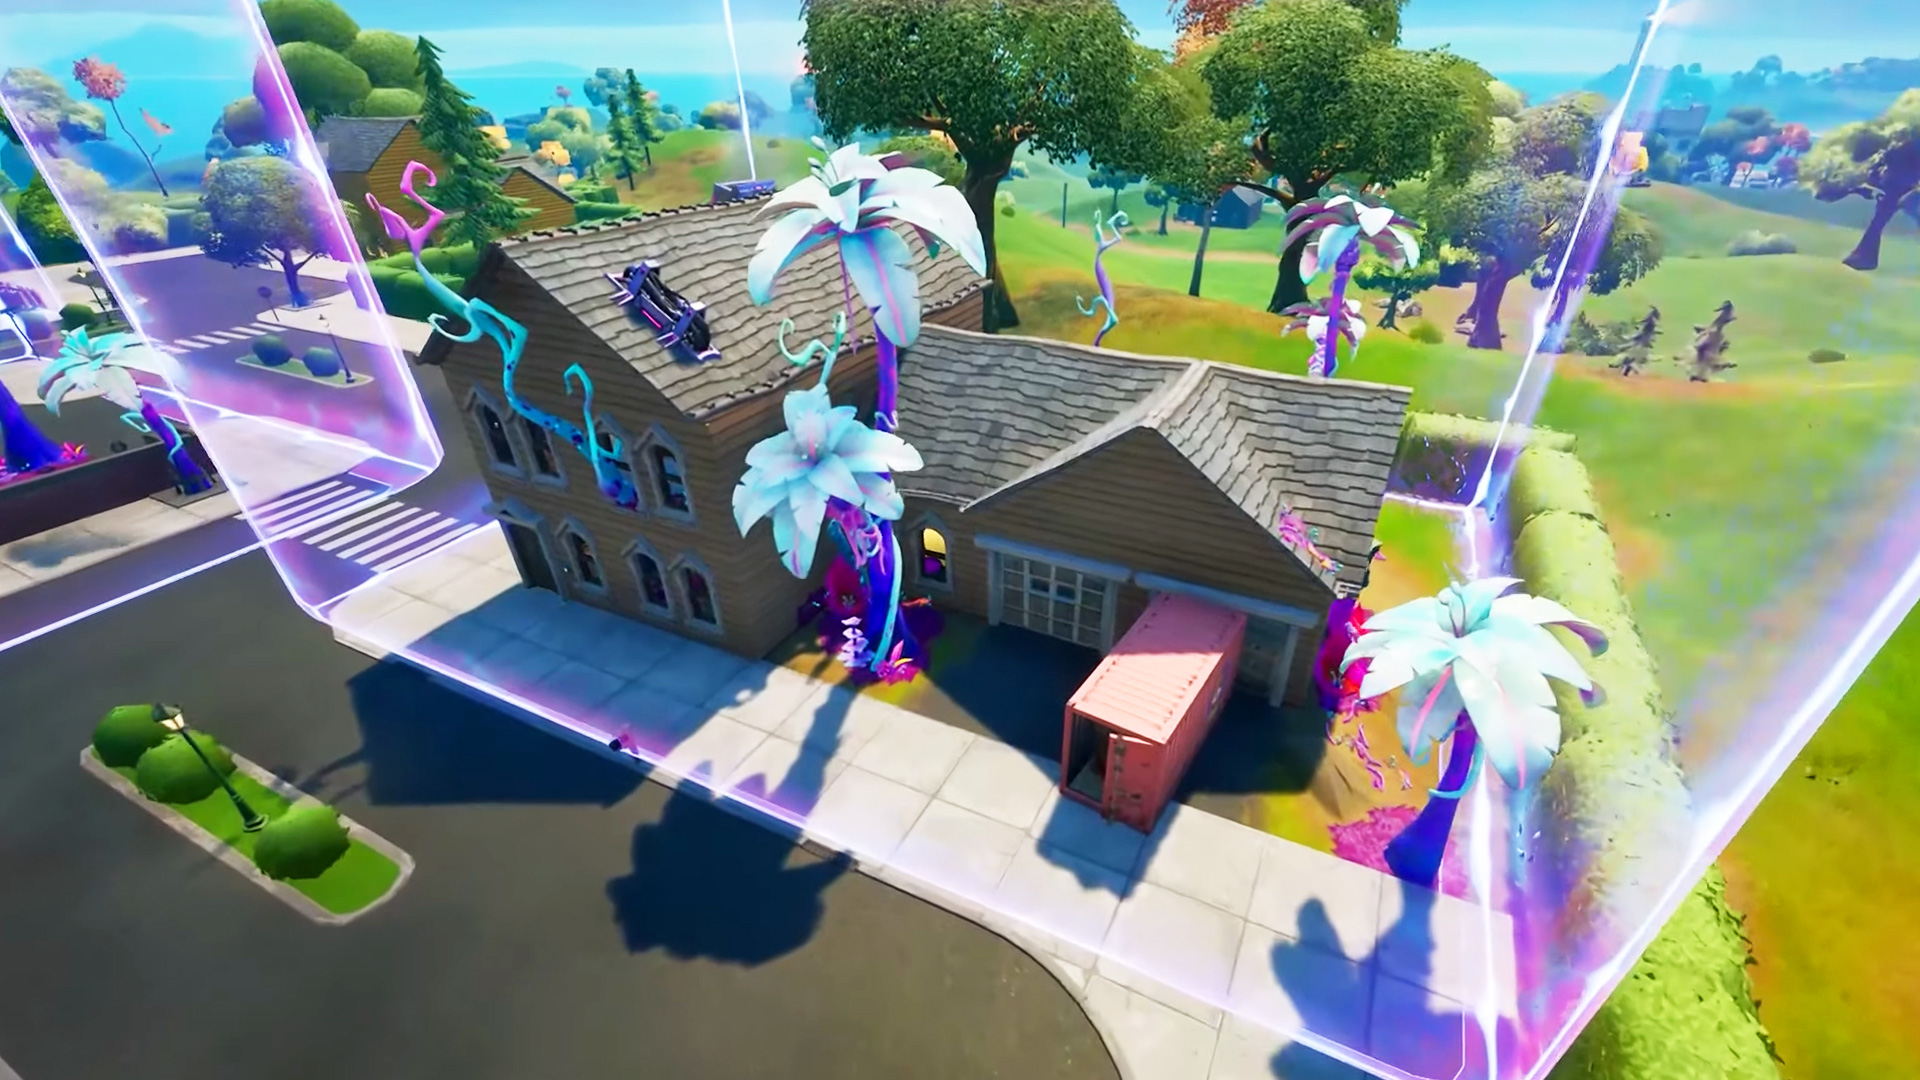 Where to place the Fortnite bioscanner in the alien biome